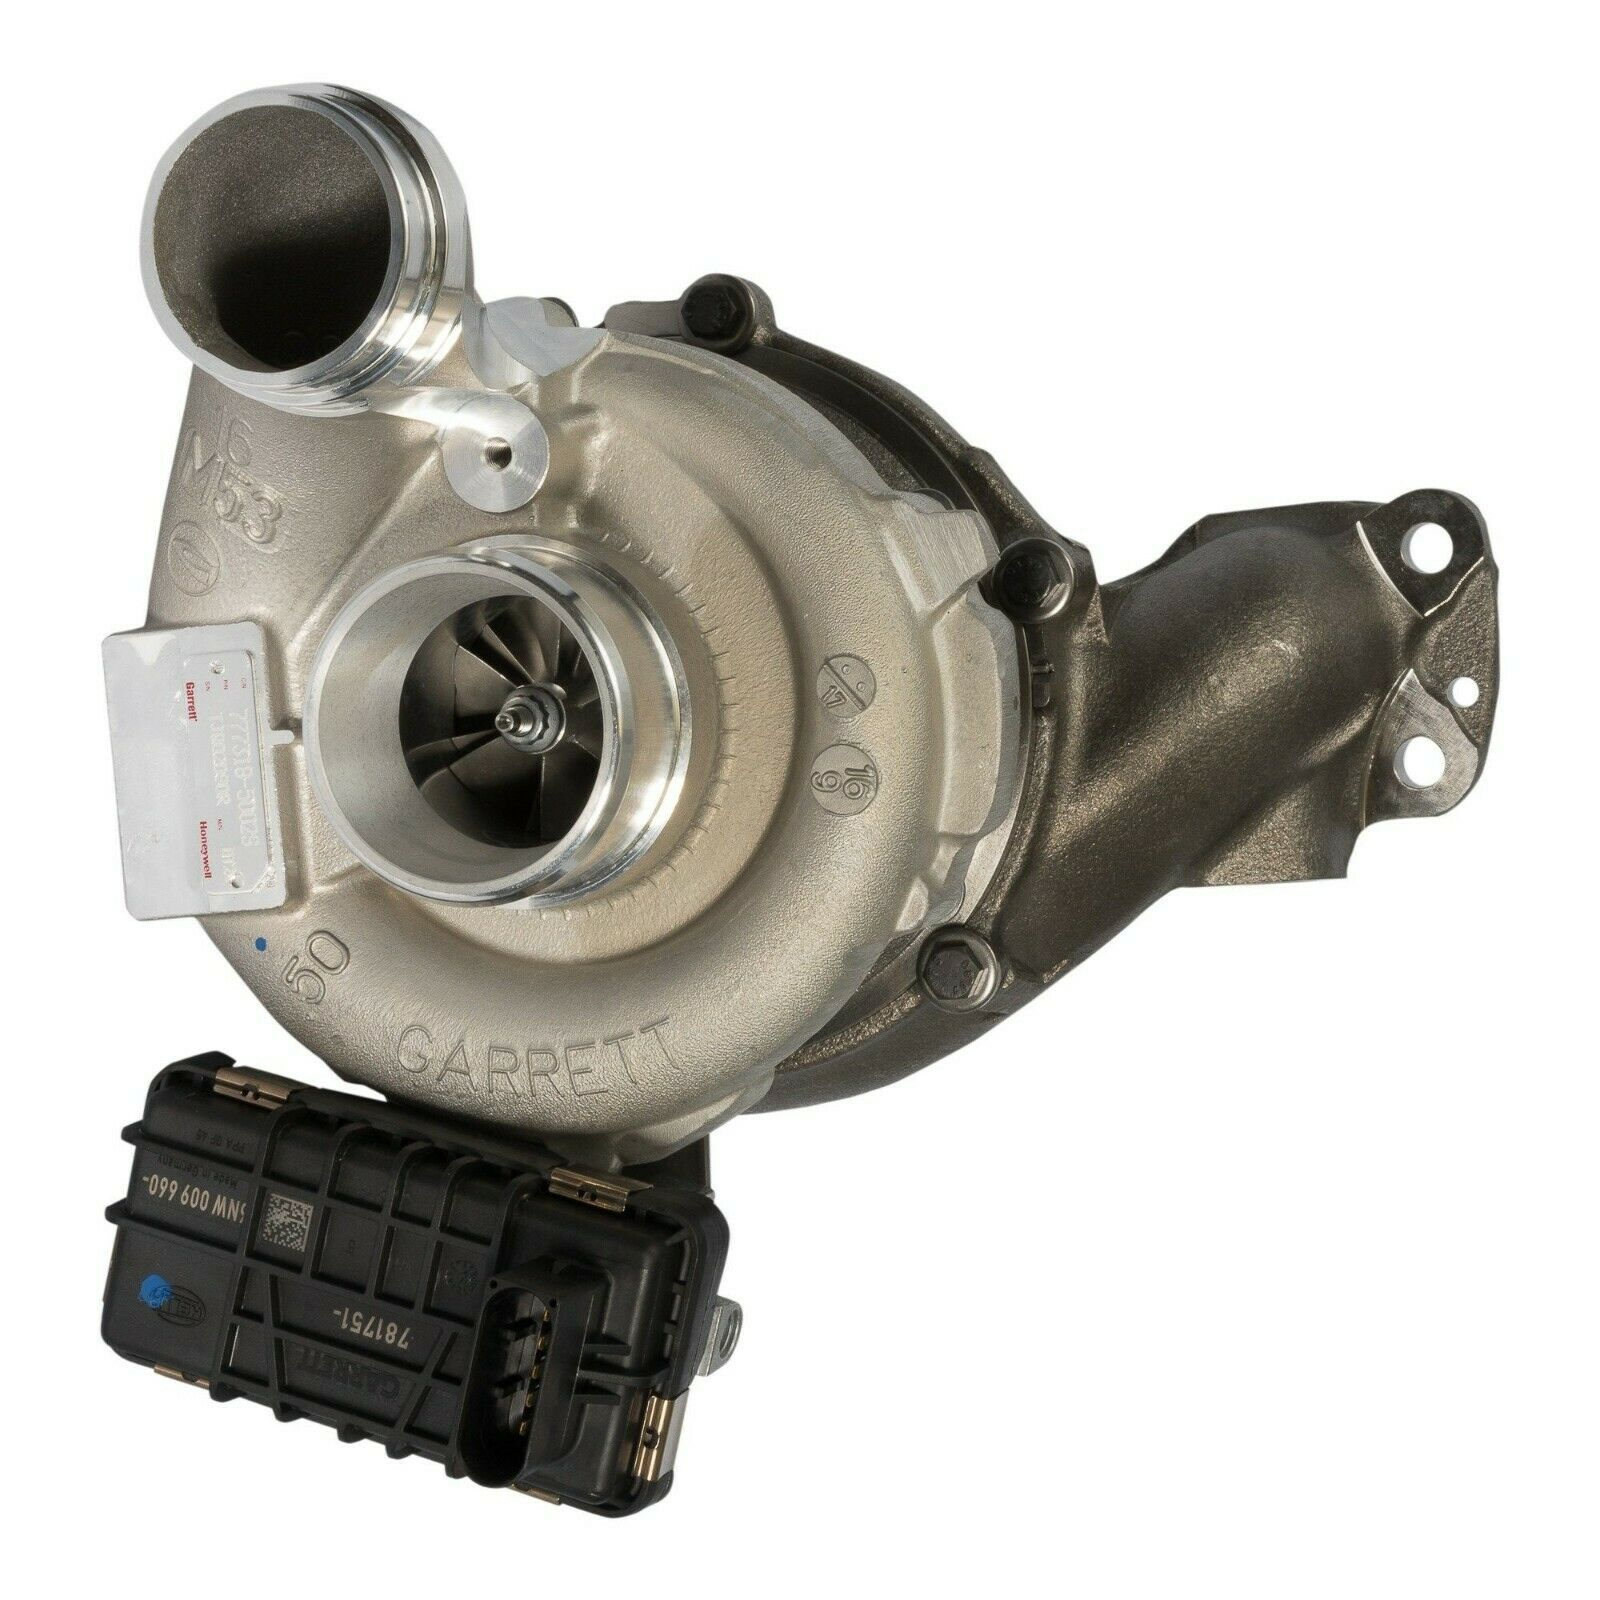 Garrett Turbocharger for 09-15 3.0L Sprinter OM642